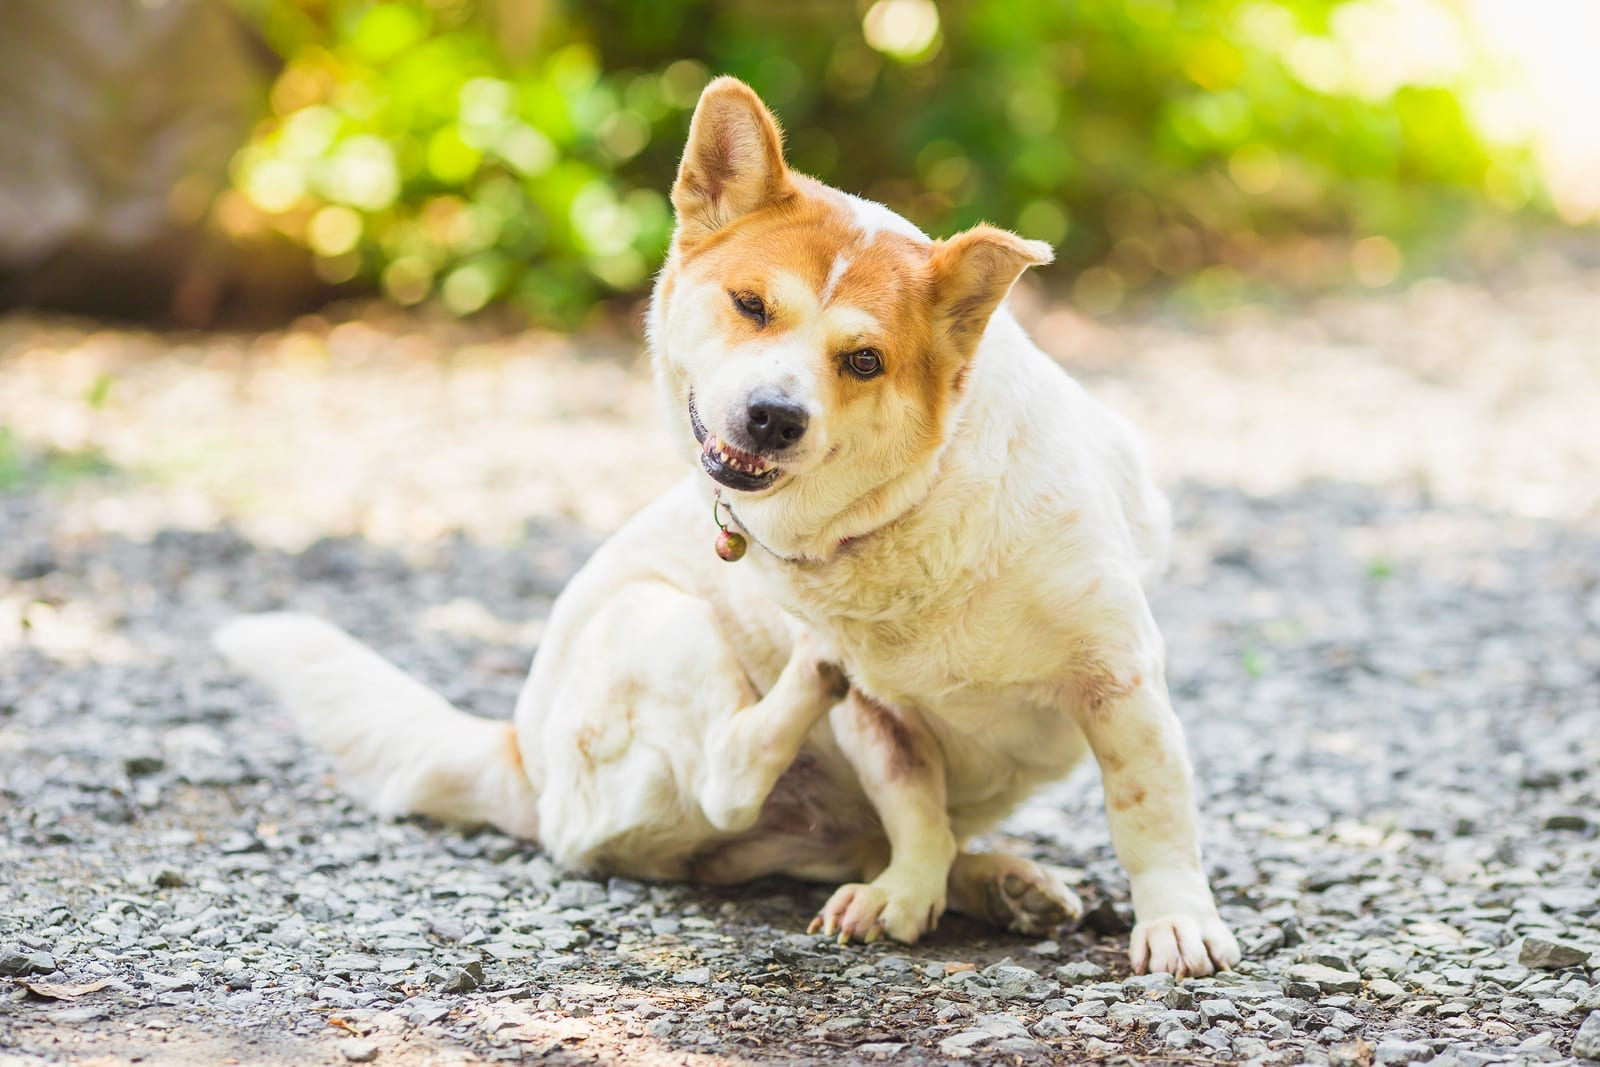 Does Your Dog Itch? Find Out How to Soothe Your Dog's Itchy Skin Naturally